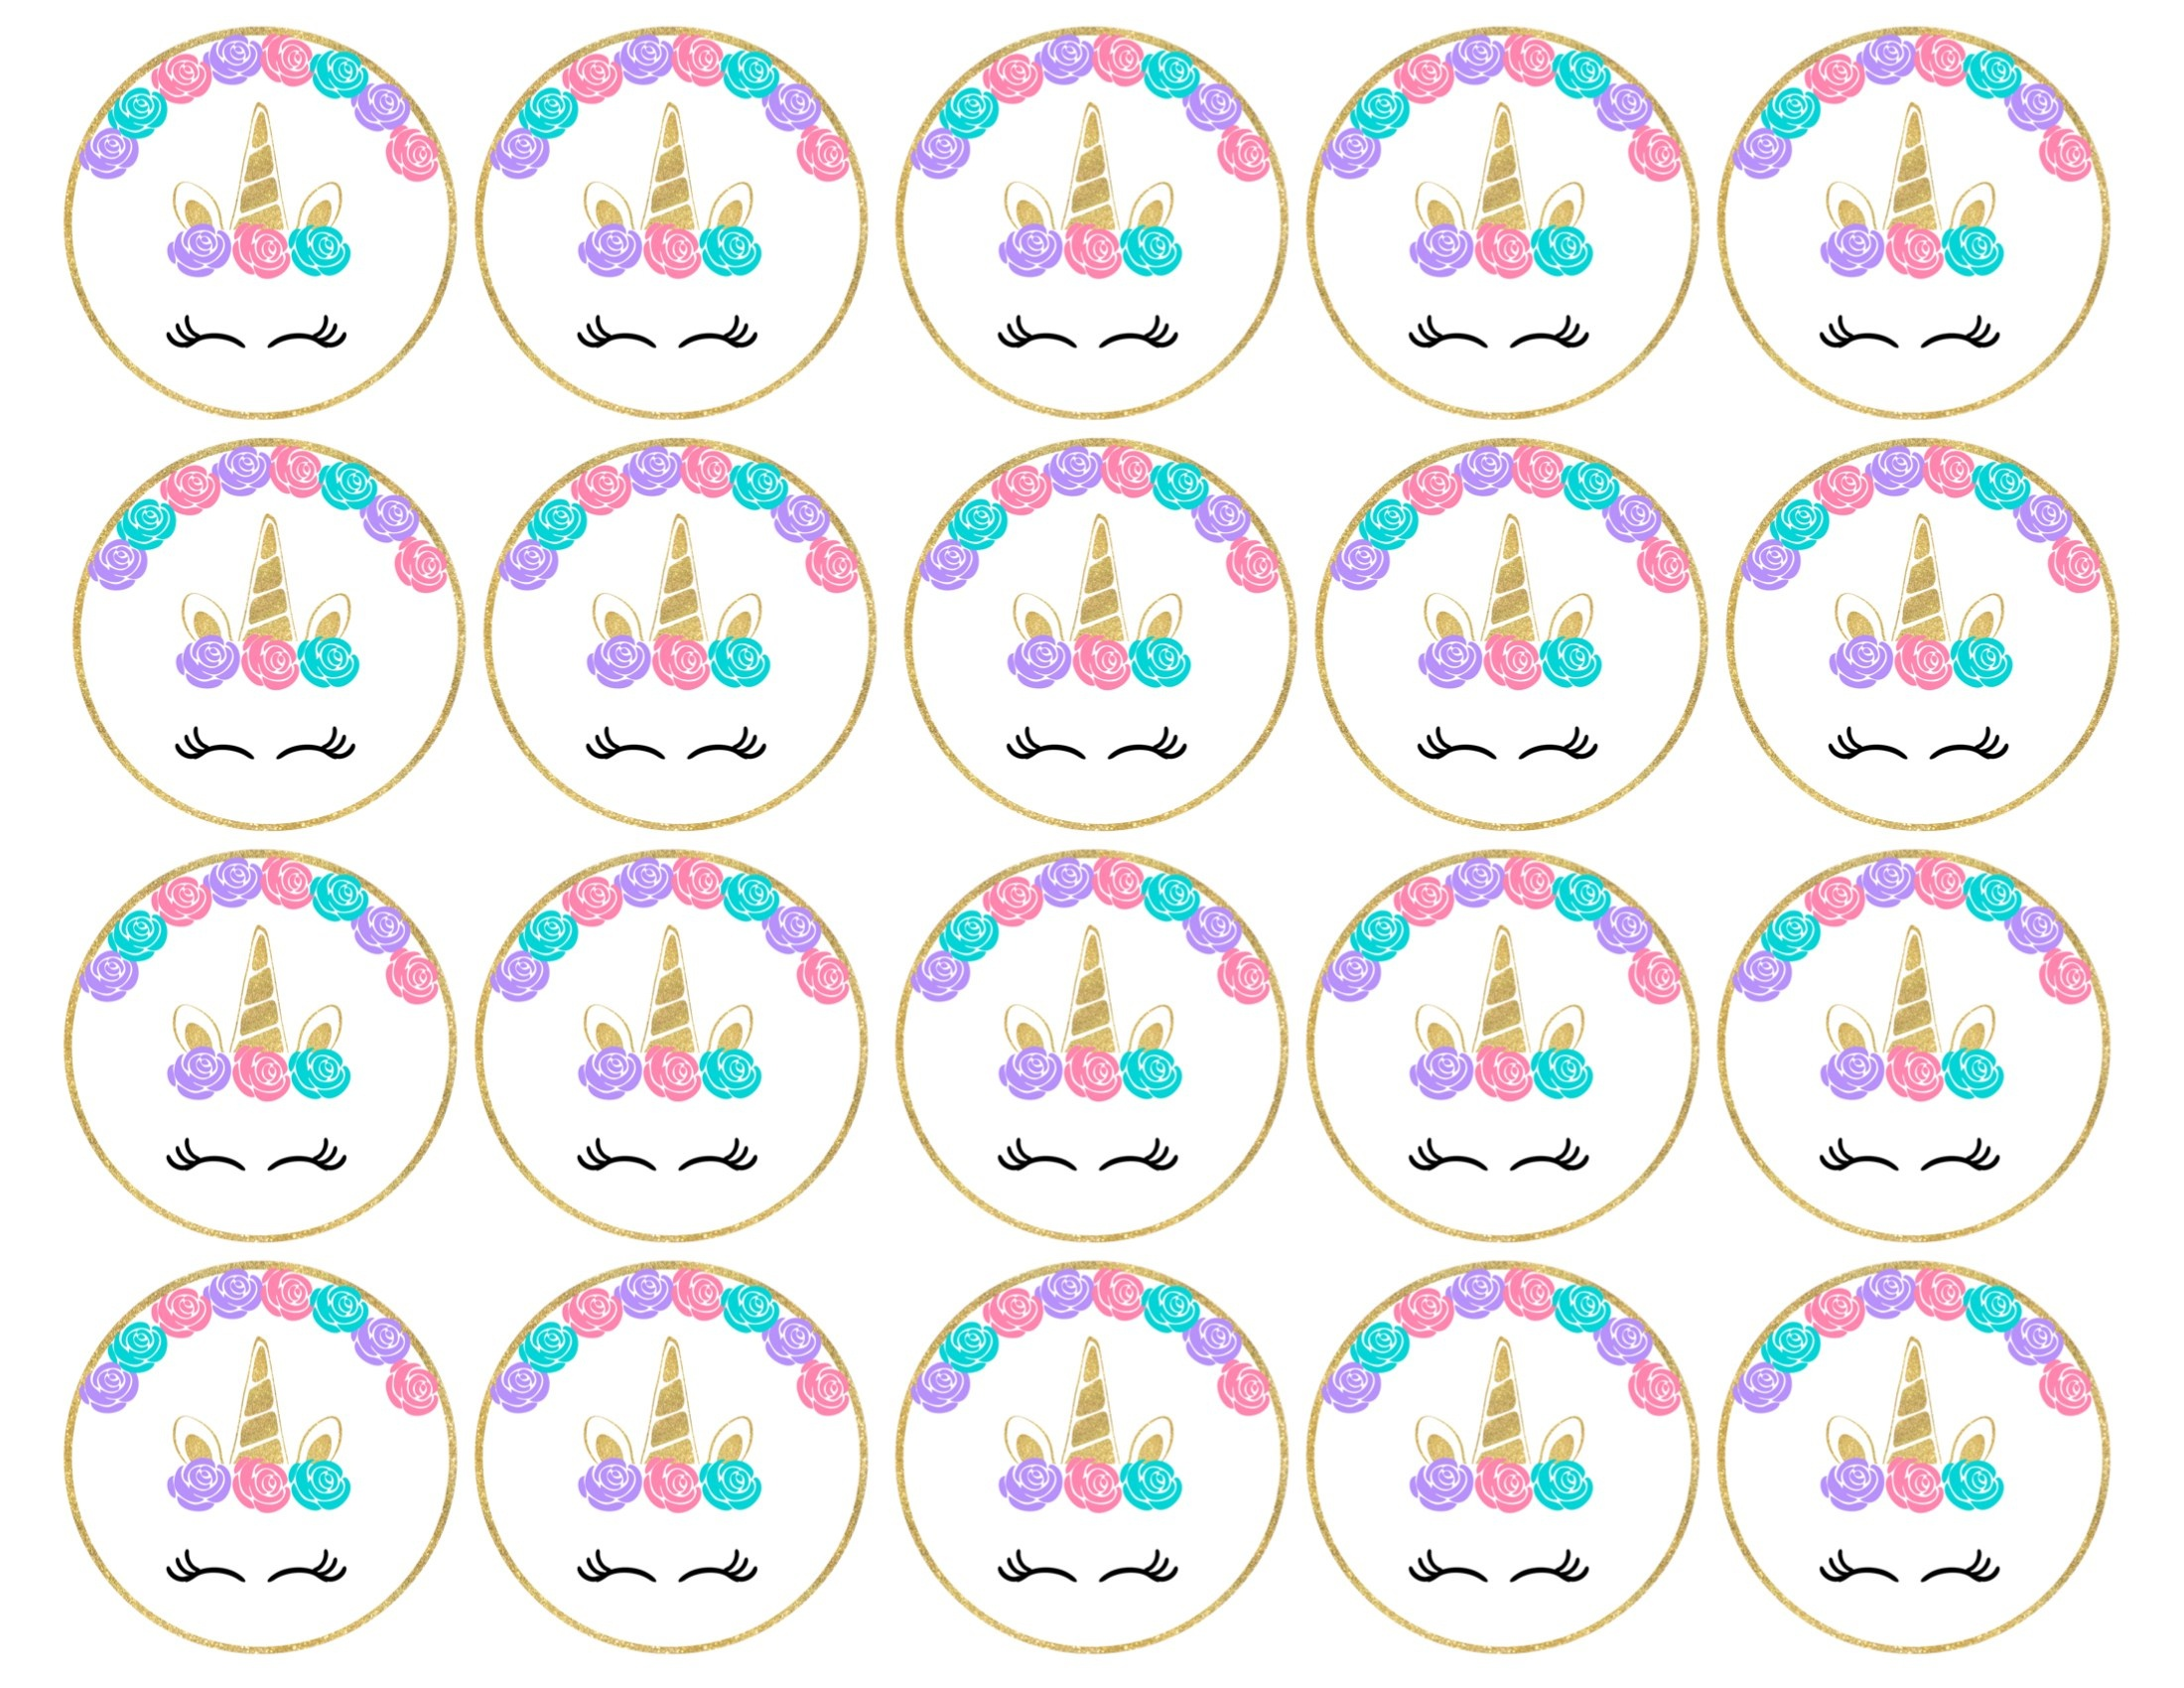 Free Printable Unicorn Cupcake Toppers - Paper Trail Design - Free Printable Cupcake Toppers